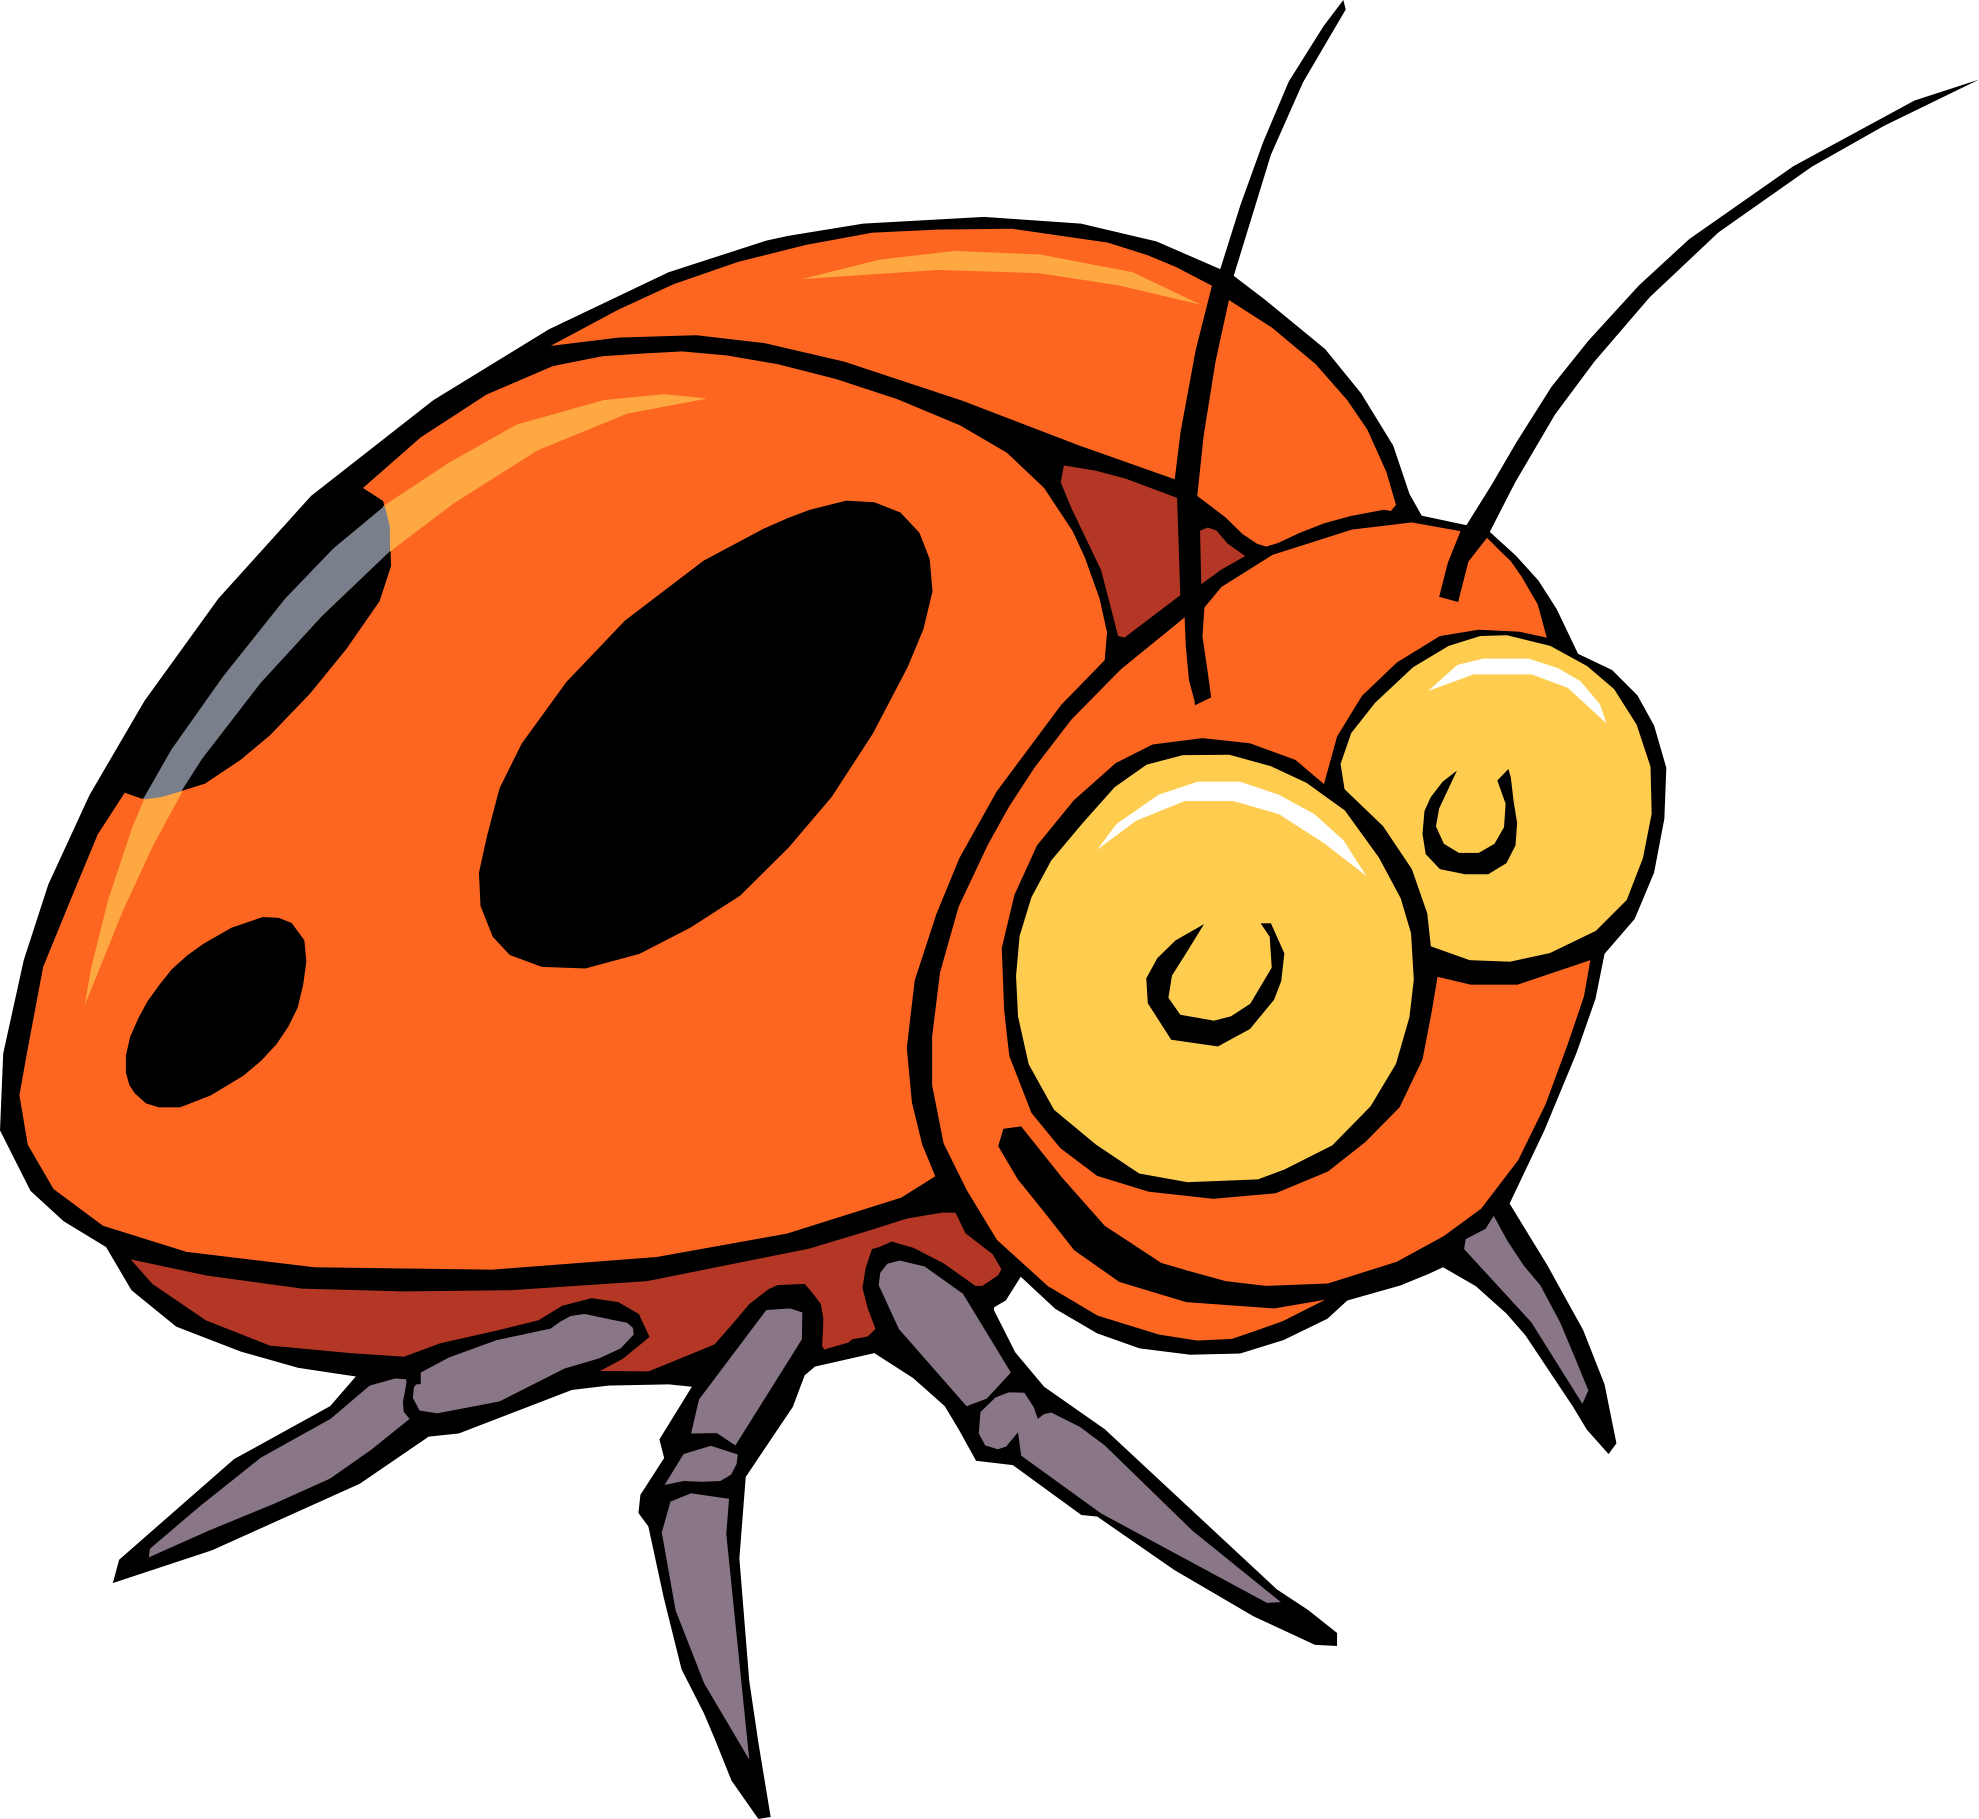 Insect Clip Art Free - ClipArt Best